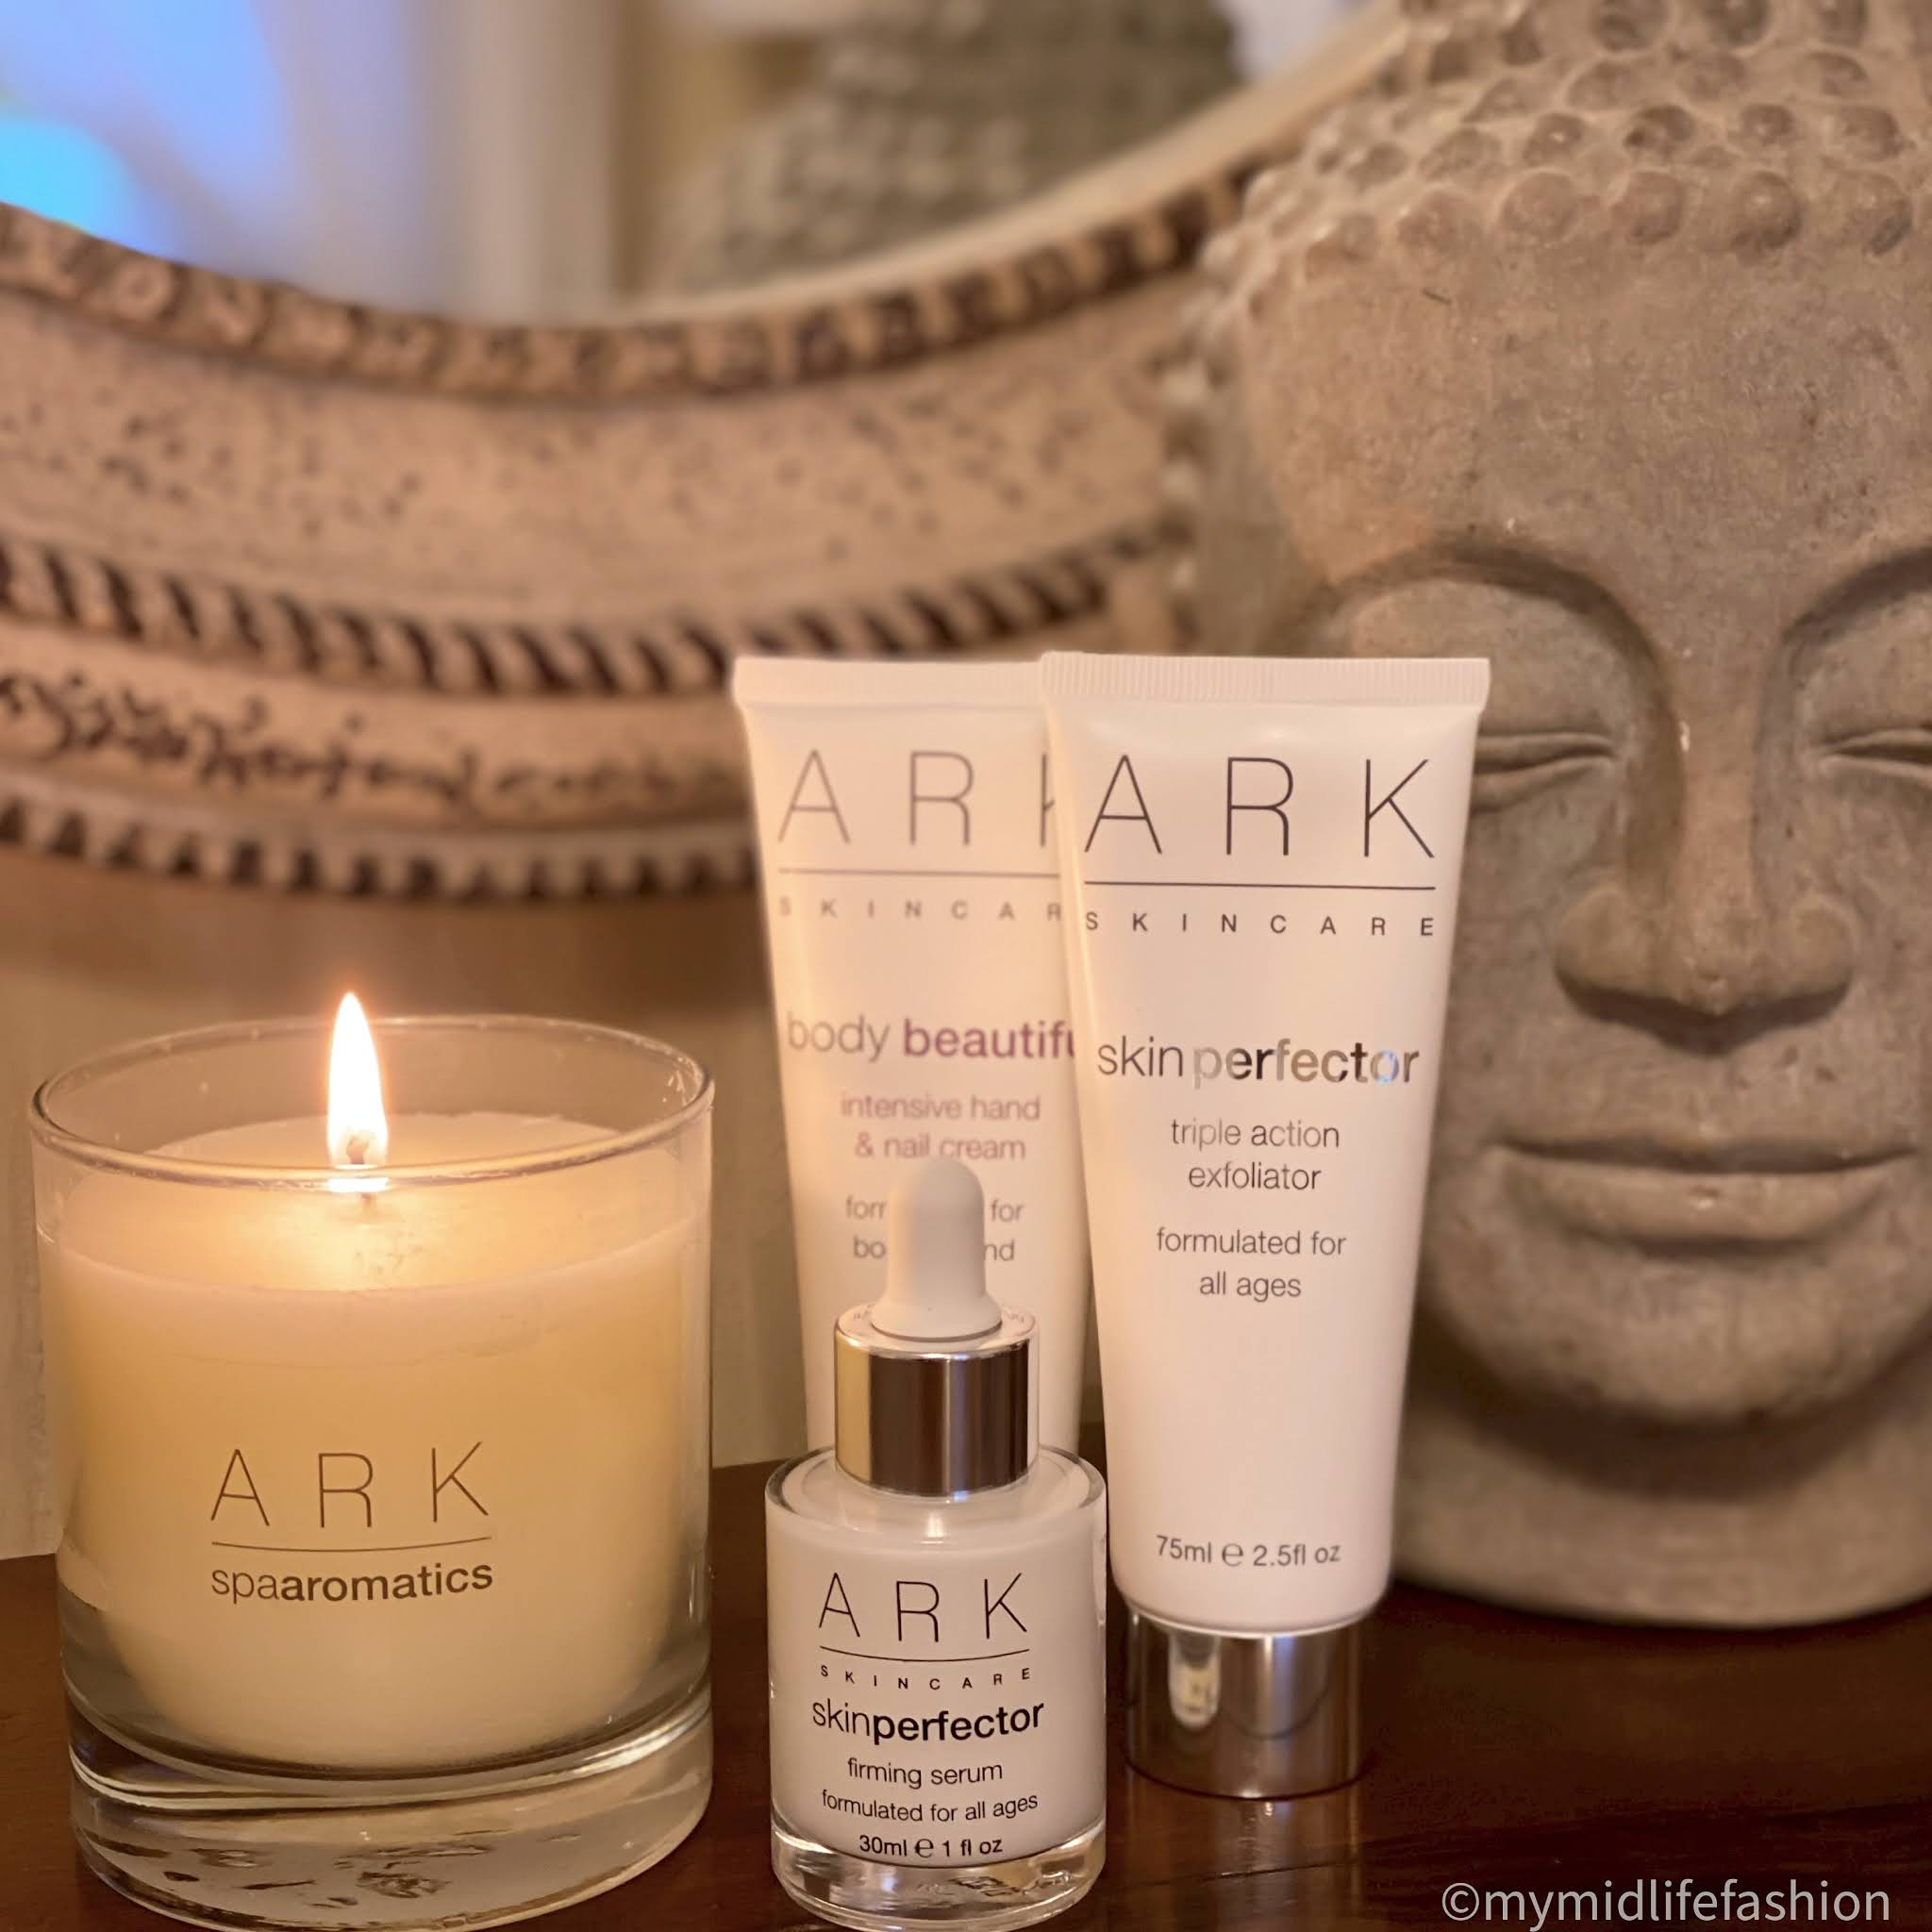 my midlife fashion, ark skincare nutmeg cinnamon and clove luxury home candle, ark skincare firming serum, ark skincare triple action exfoliator, ark skincare intensive hand and nail cream